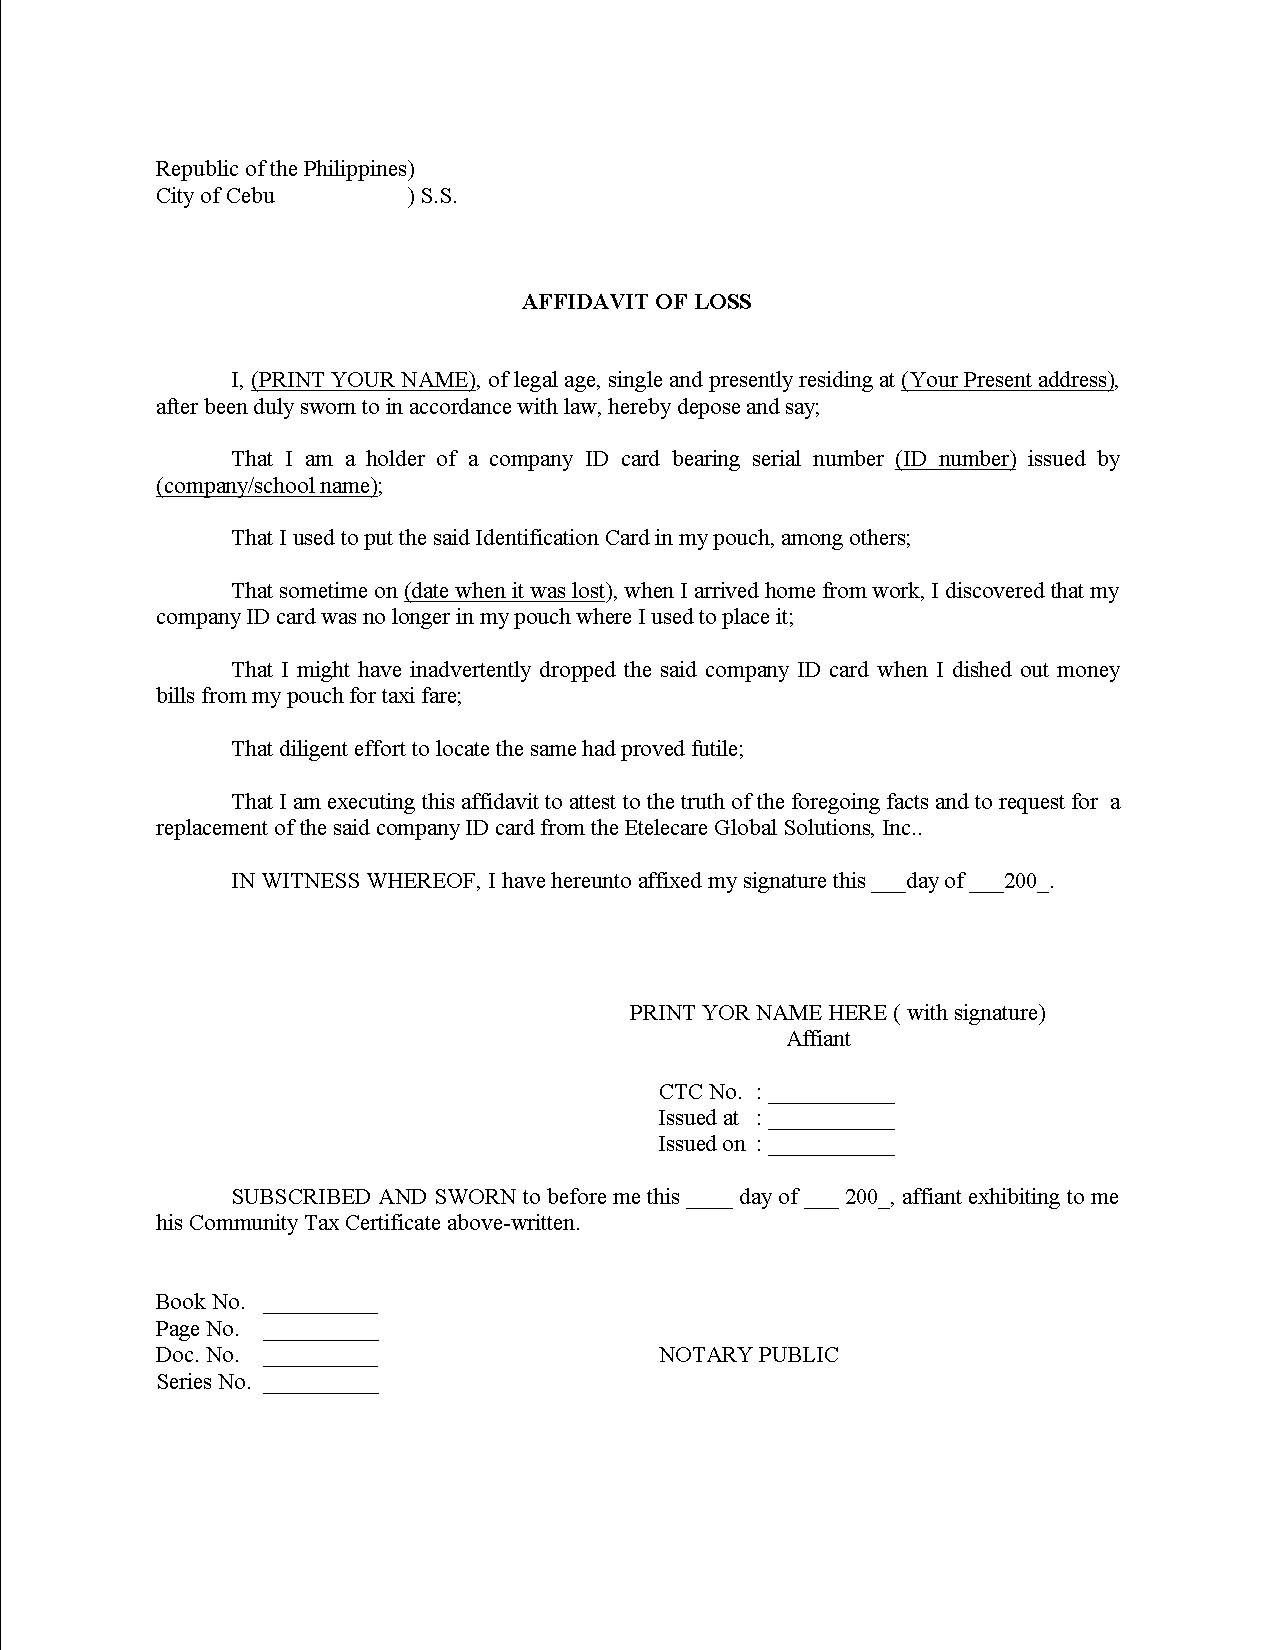 February 2015 Best Template Collection sample affidavit